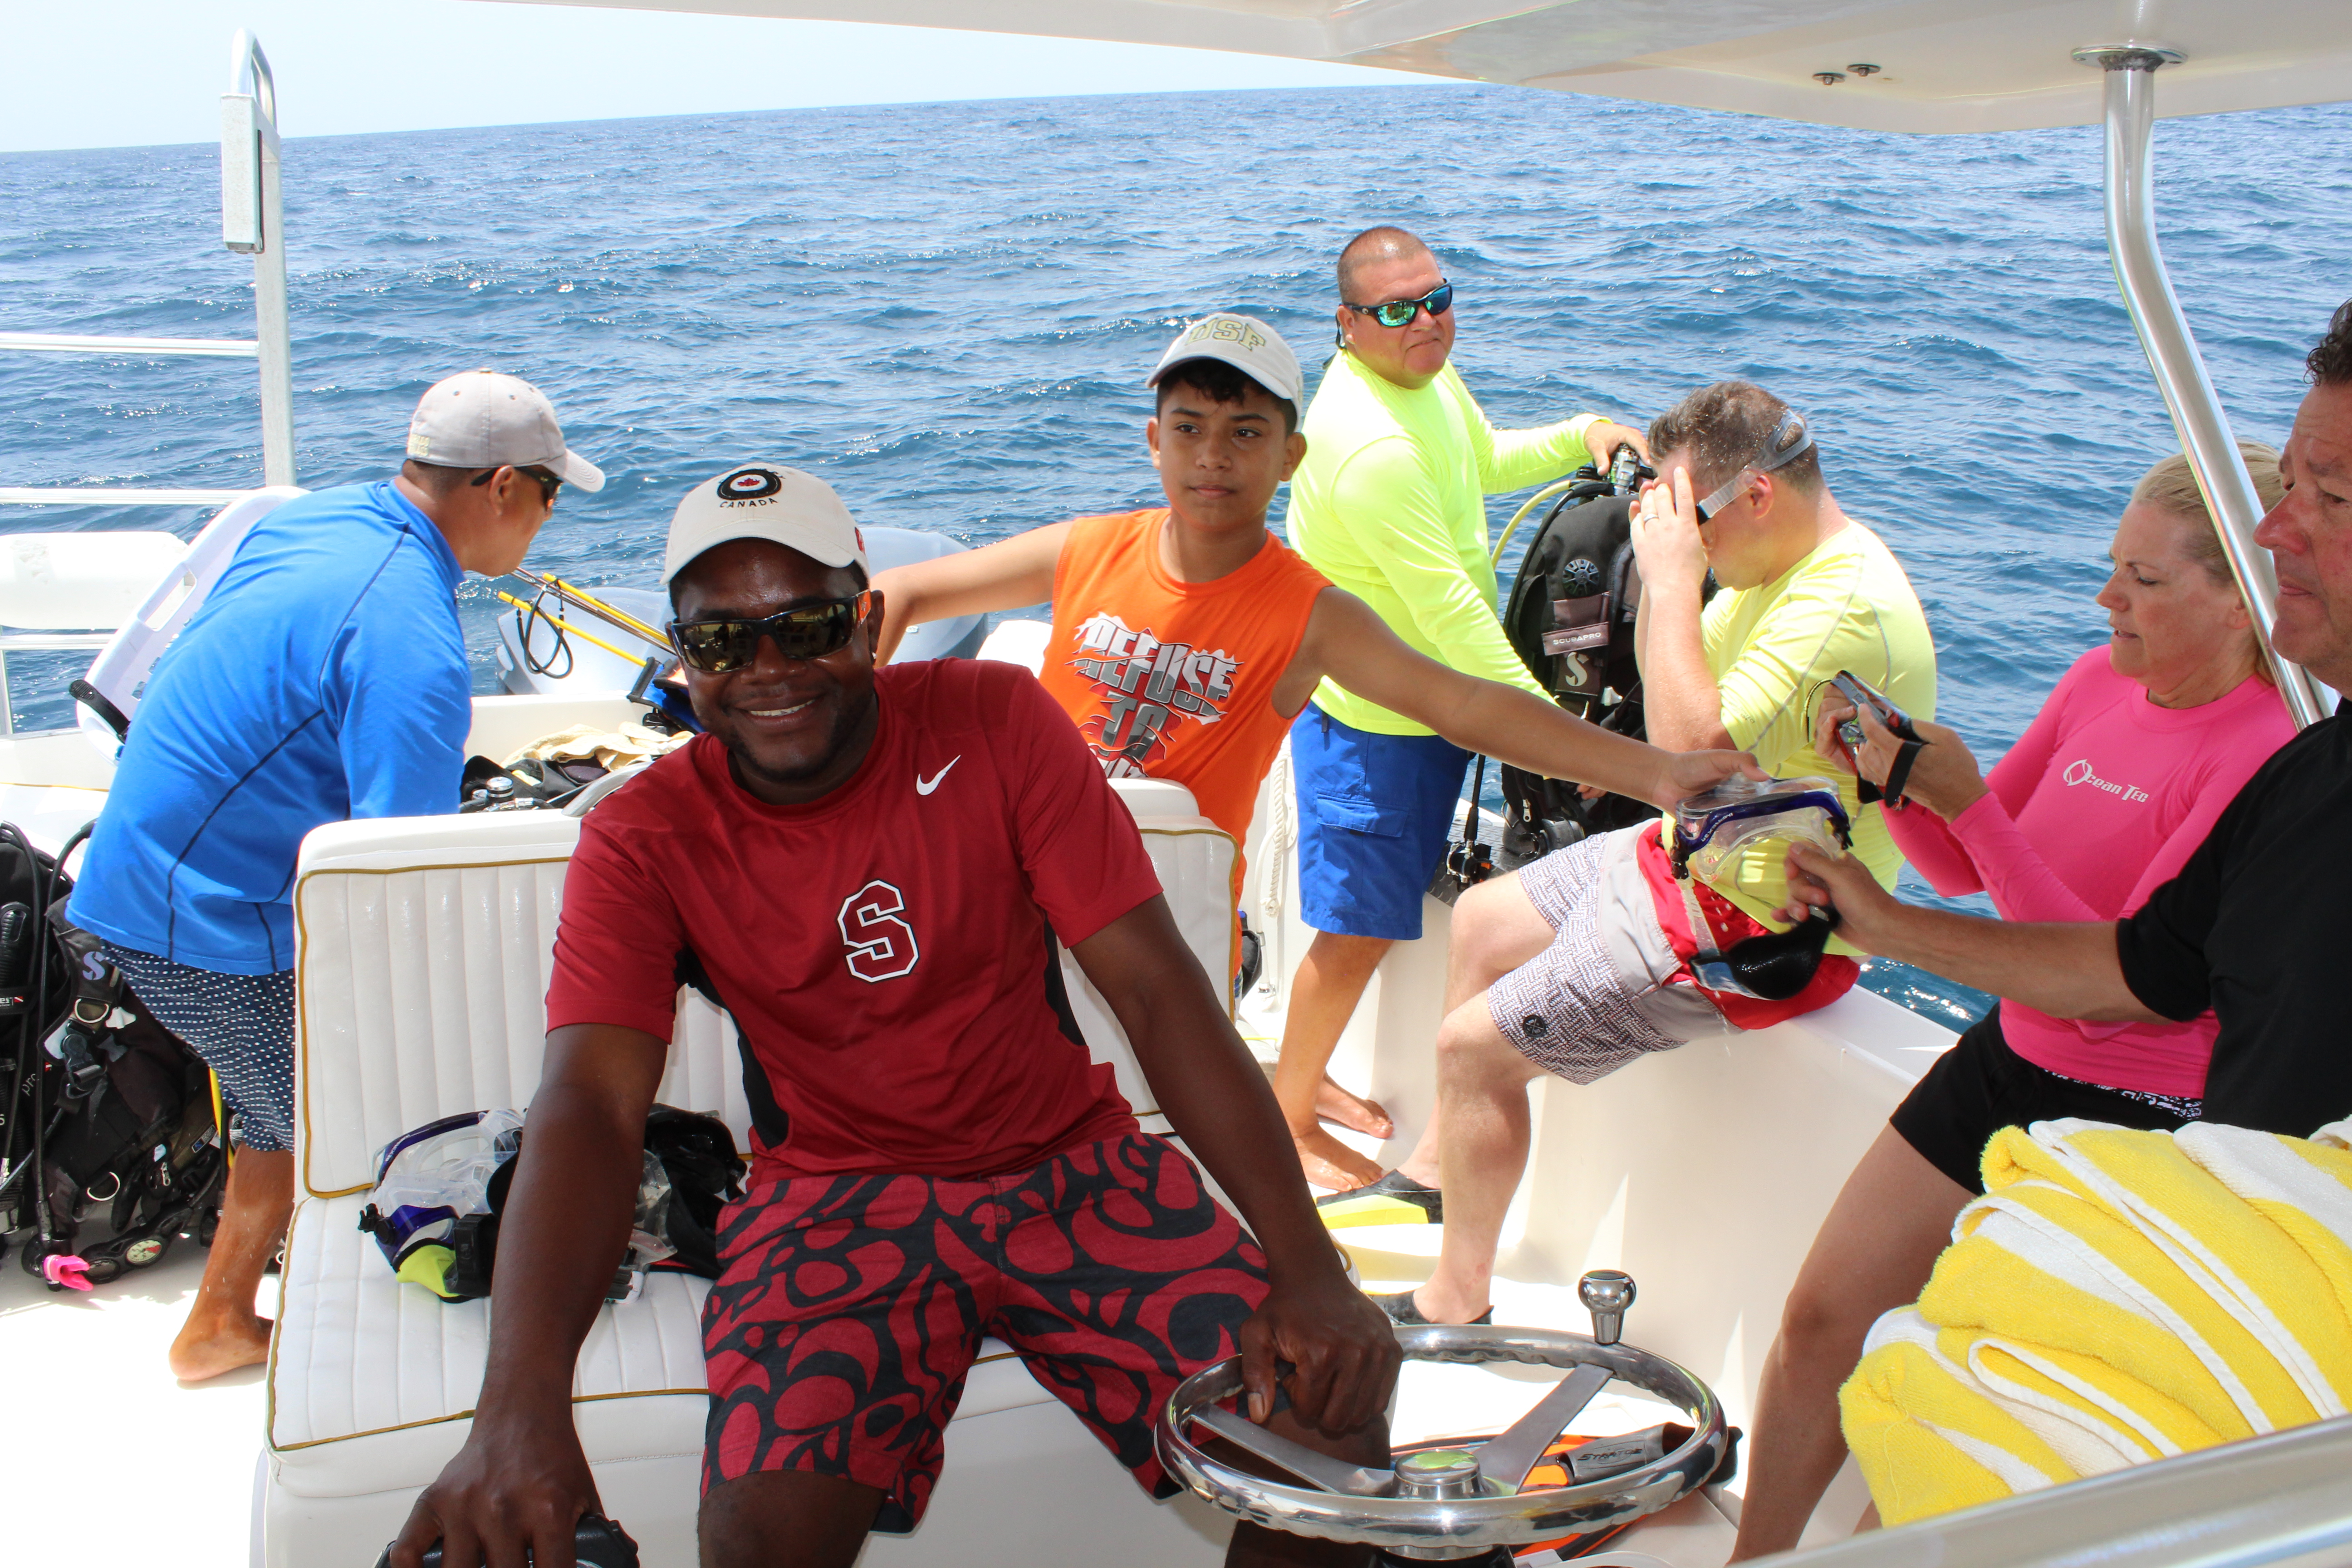 Canary Cove Privately Guided SCUBA Diving with Divemasters Gil & Palma, Boat Captain Mike